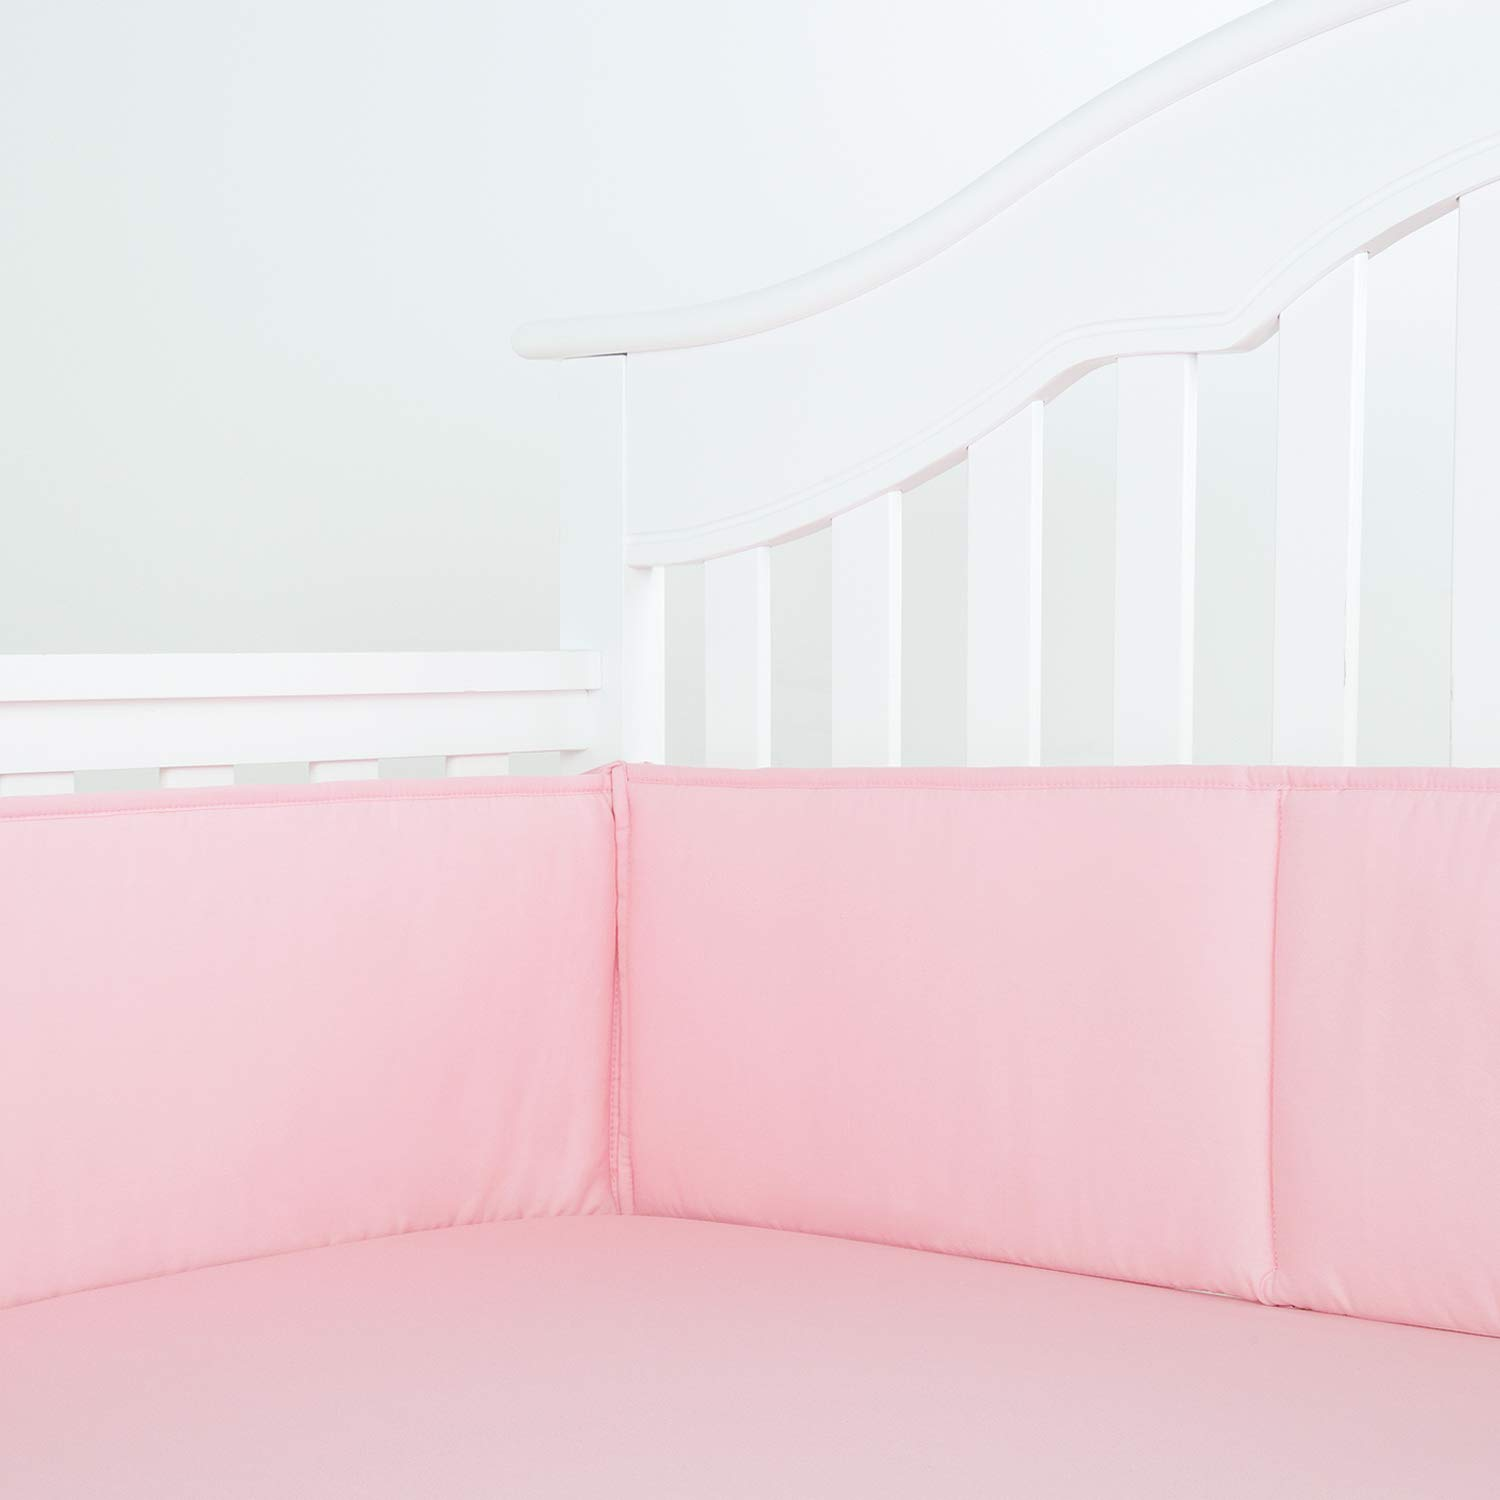 Ultra Soft Crib Padding for Rails TILLYOU 4-PIECE Baby Breathable Crib Bumper Pads for Standard Cribs Machine Washable Padded Crib Liner 100/% Premium Cotton Pink